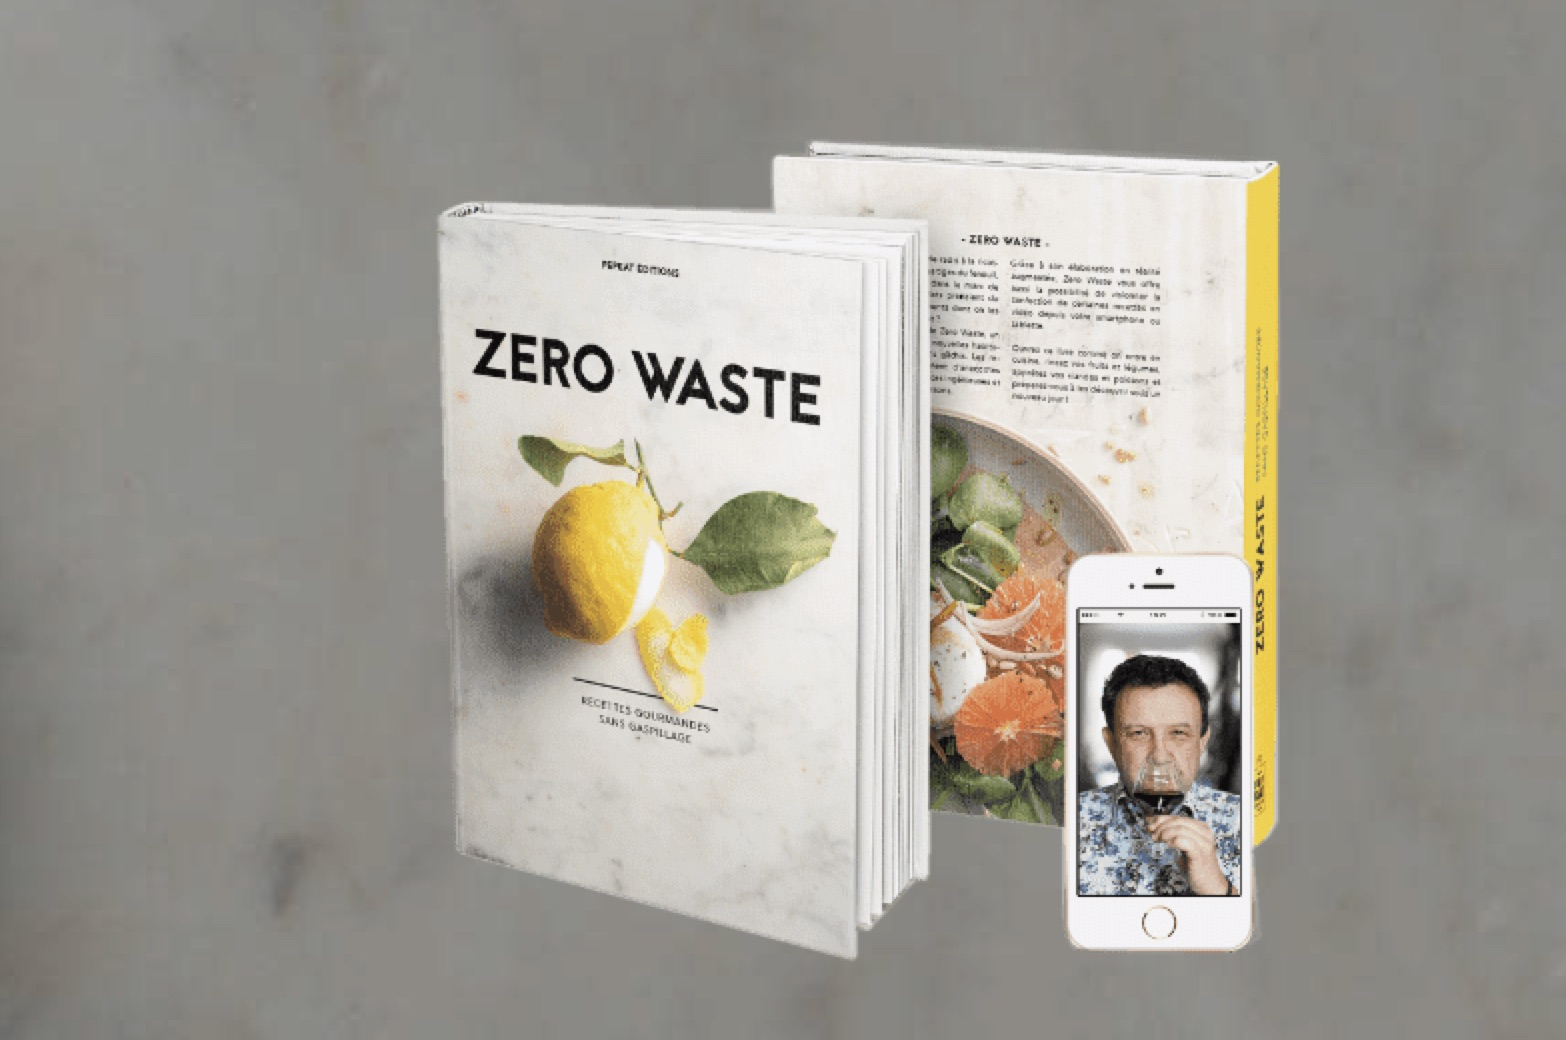 Pepeat Studio zet expertise in de verf met Zero Waste